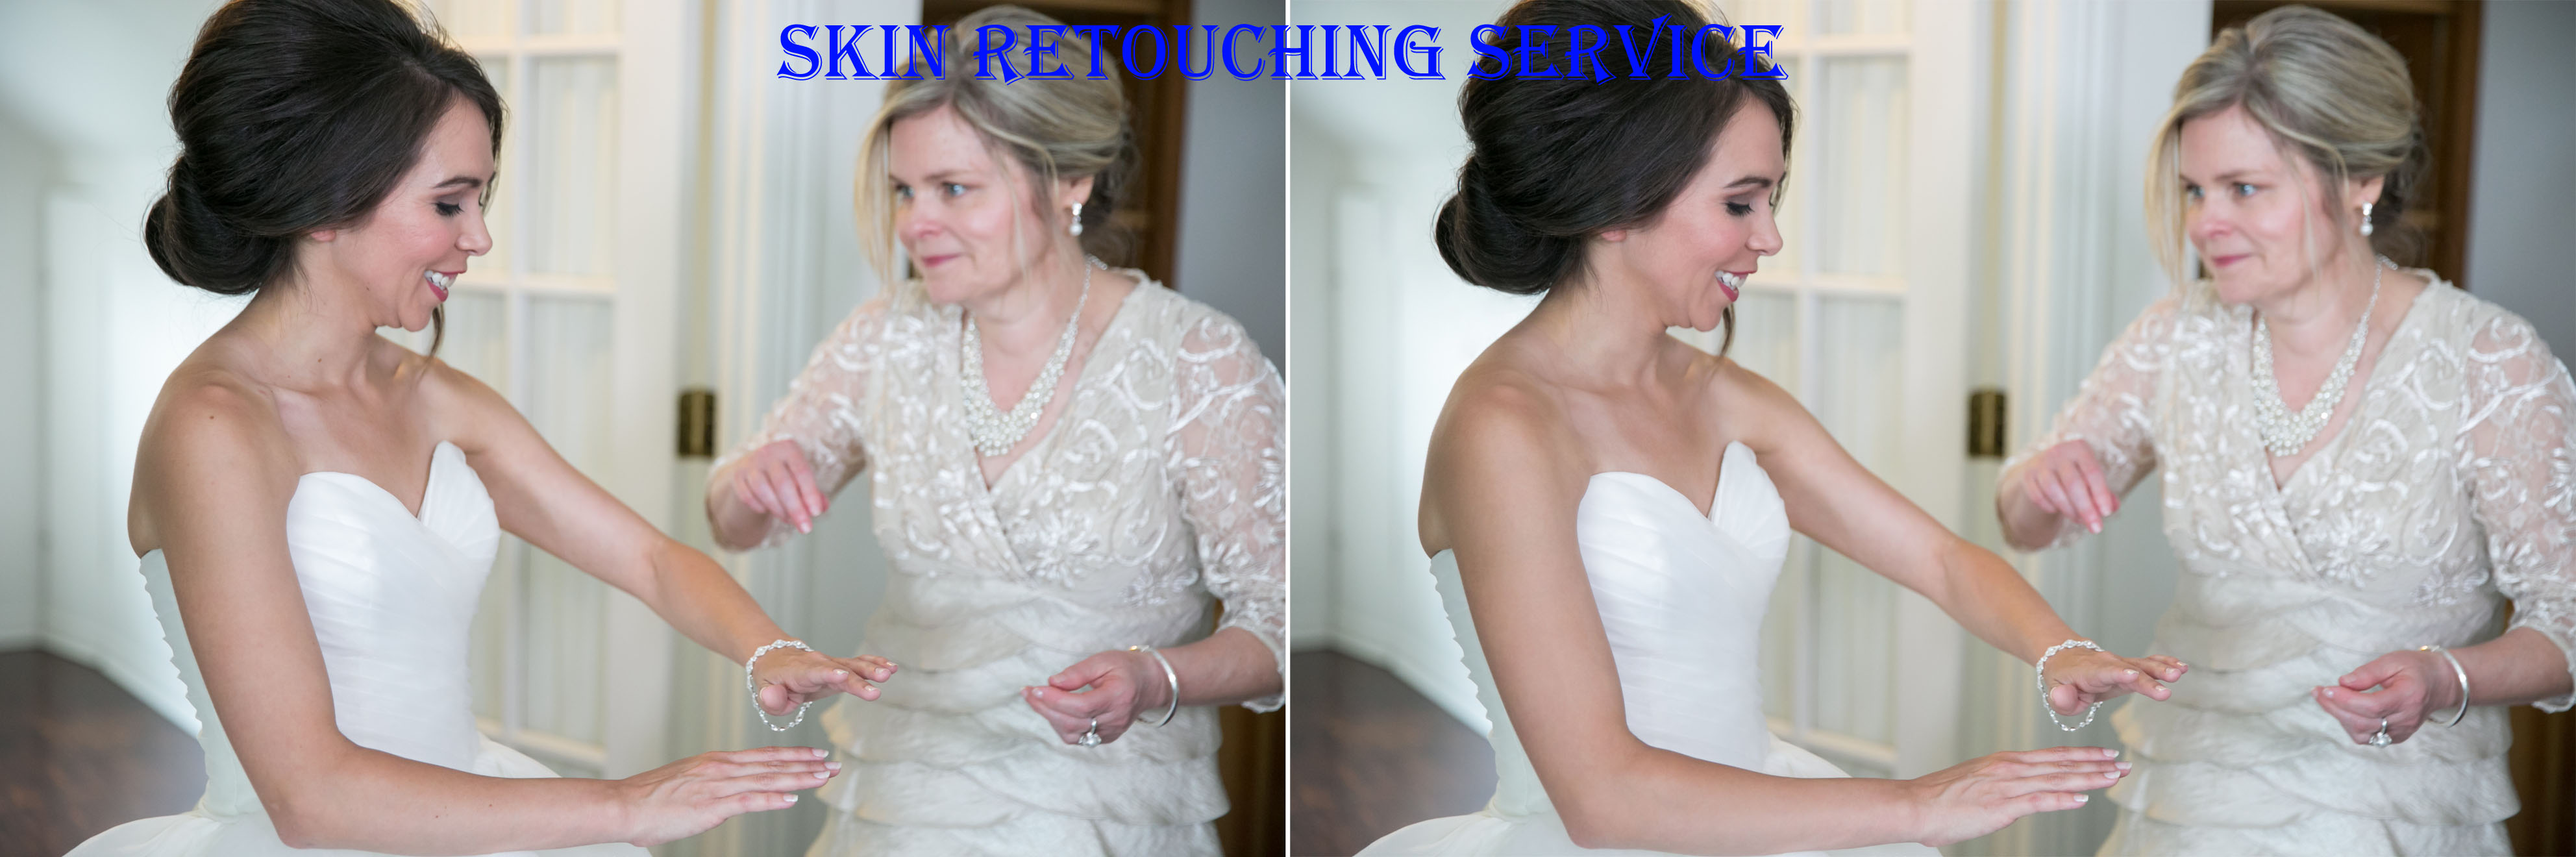 Skin retouching is important for your wedding photography images